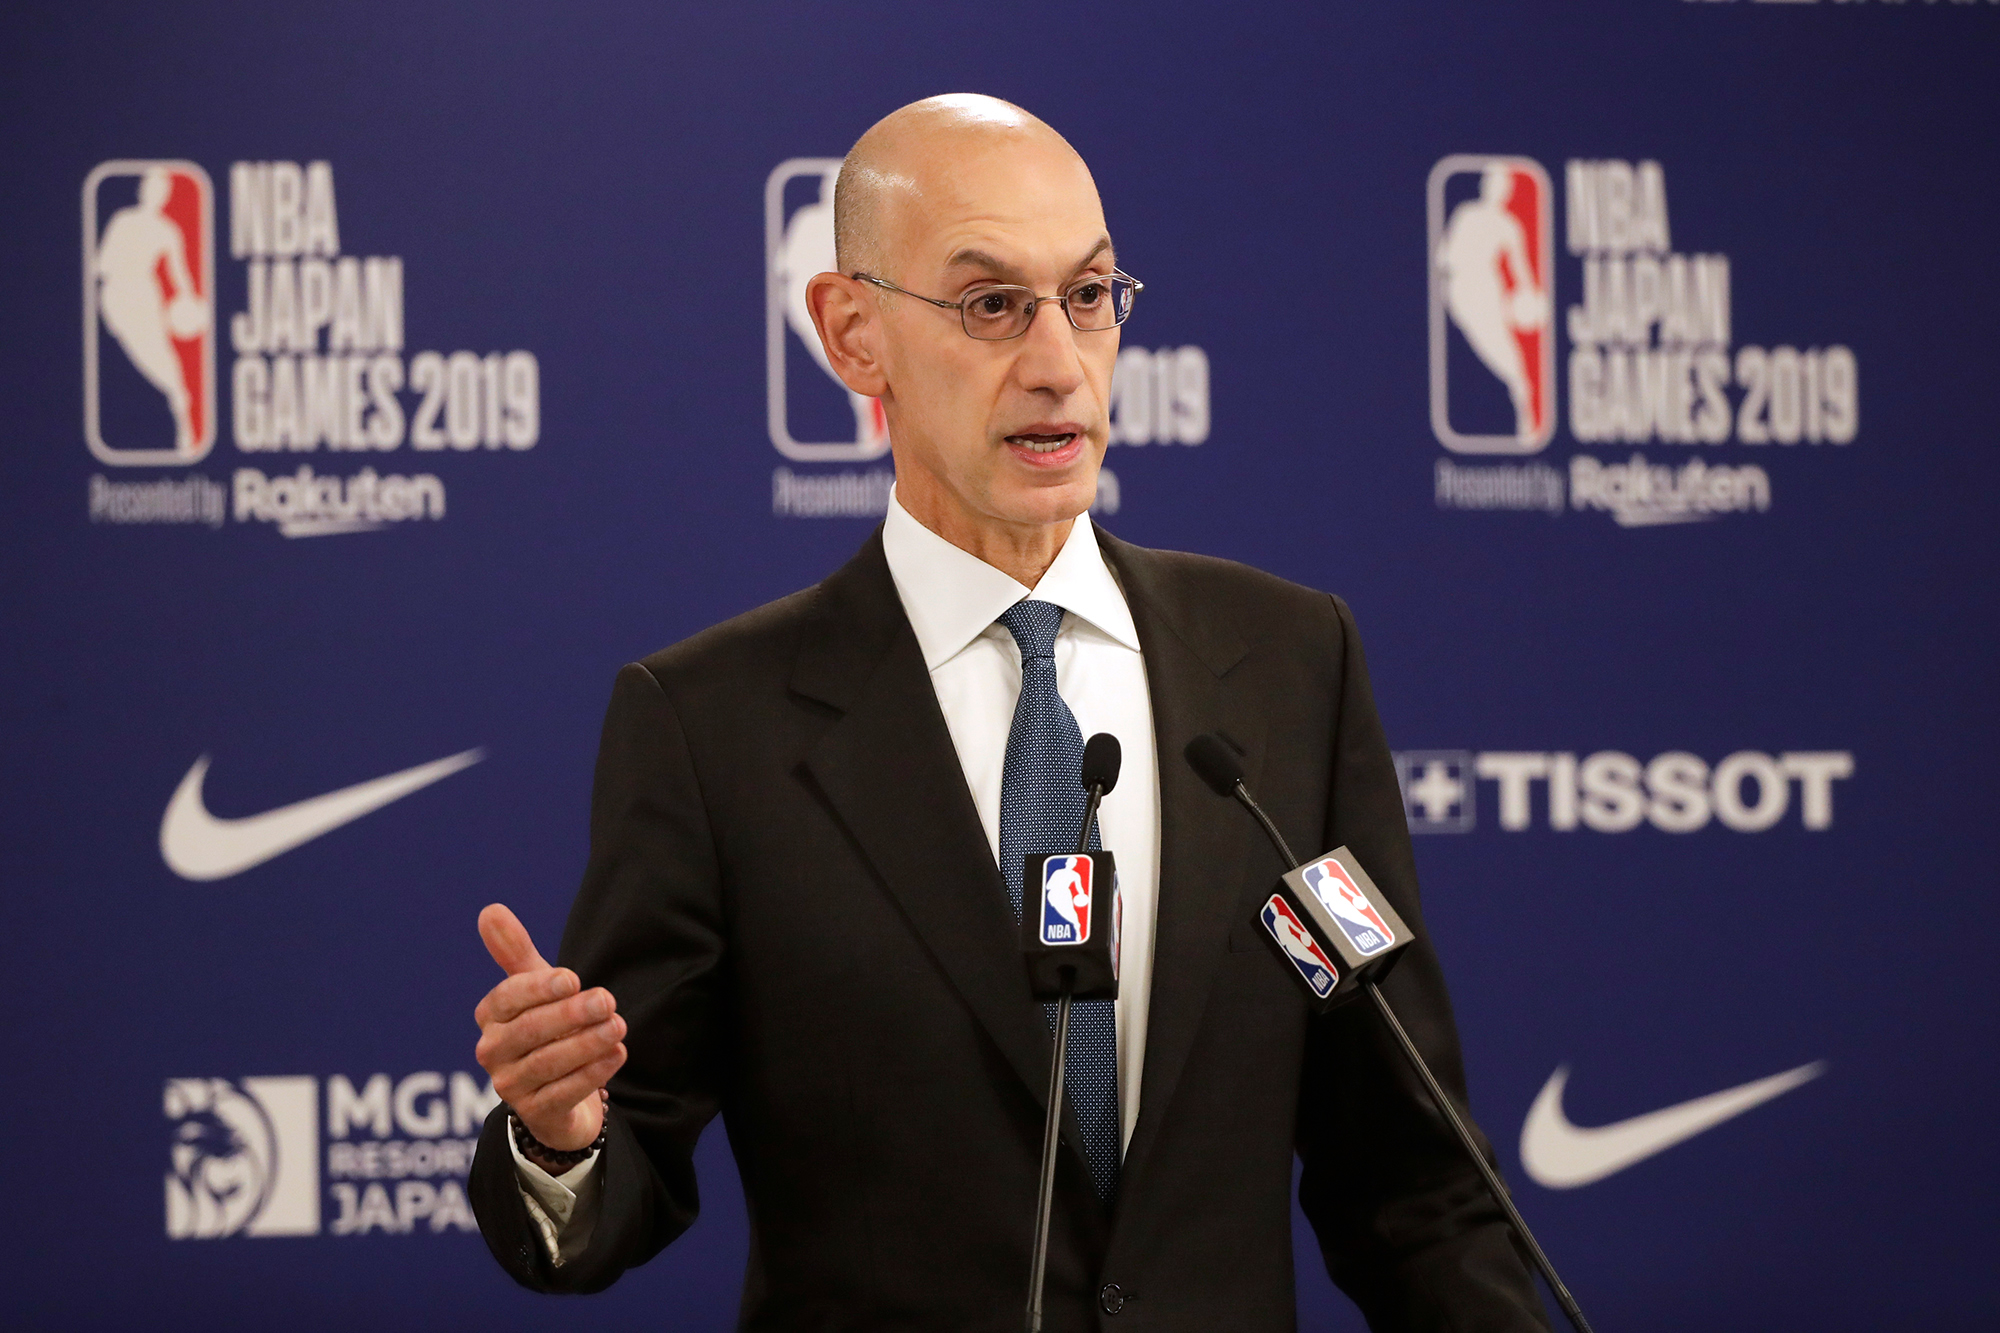 In this October 8, 2019 file photo, NBA Commissioner Adam Silver speaks at a news conference near Tokyo.